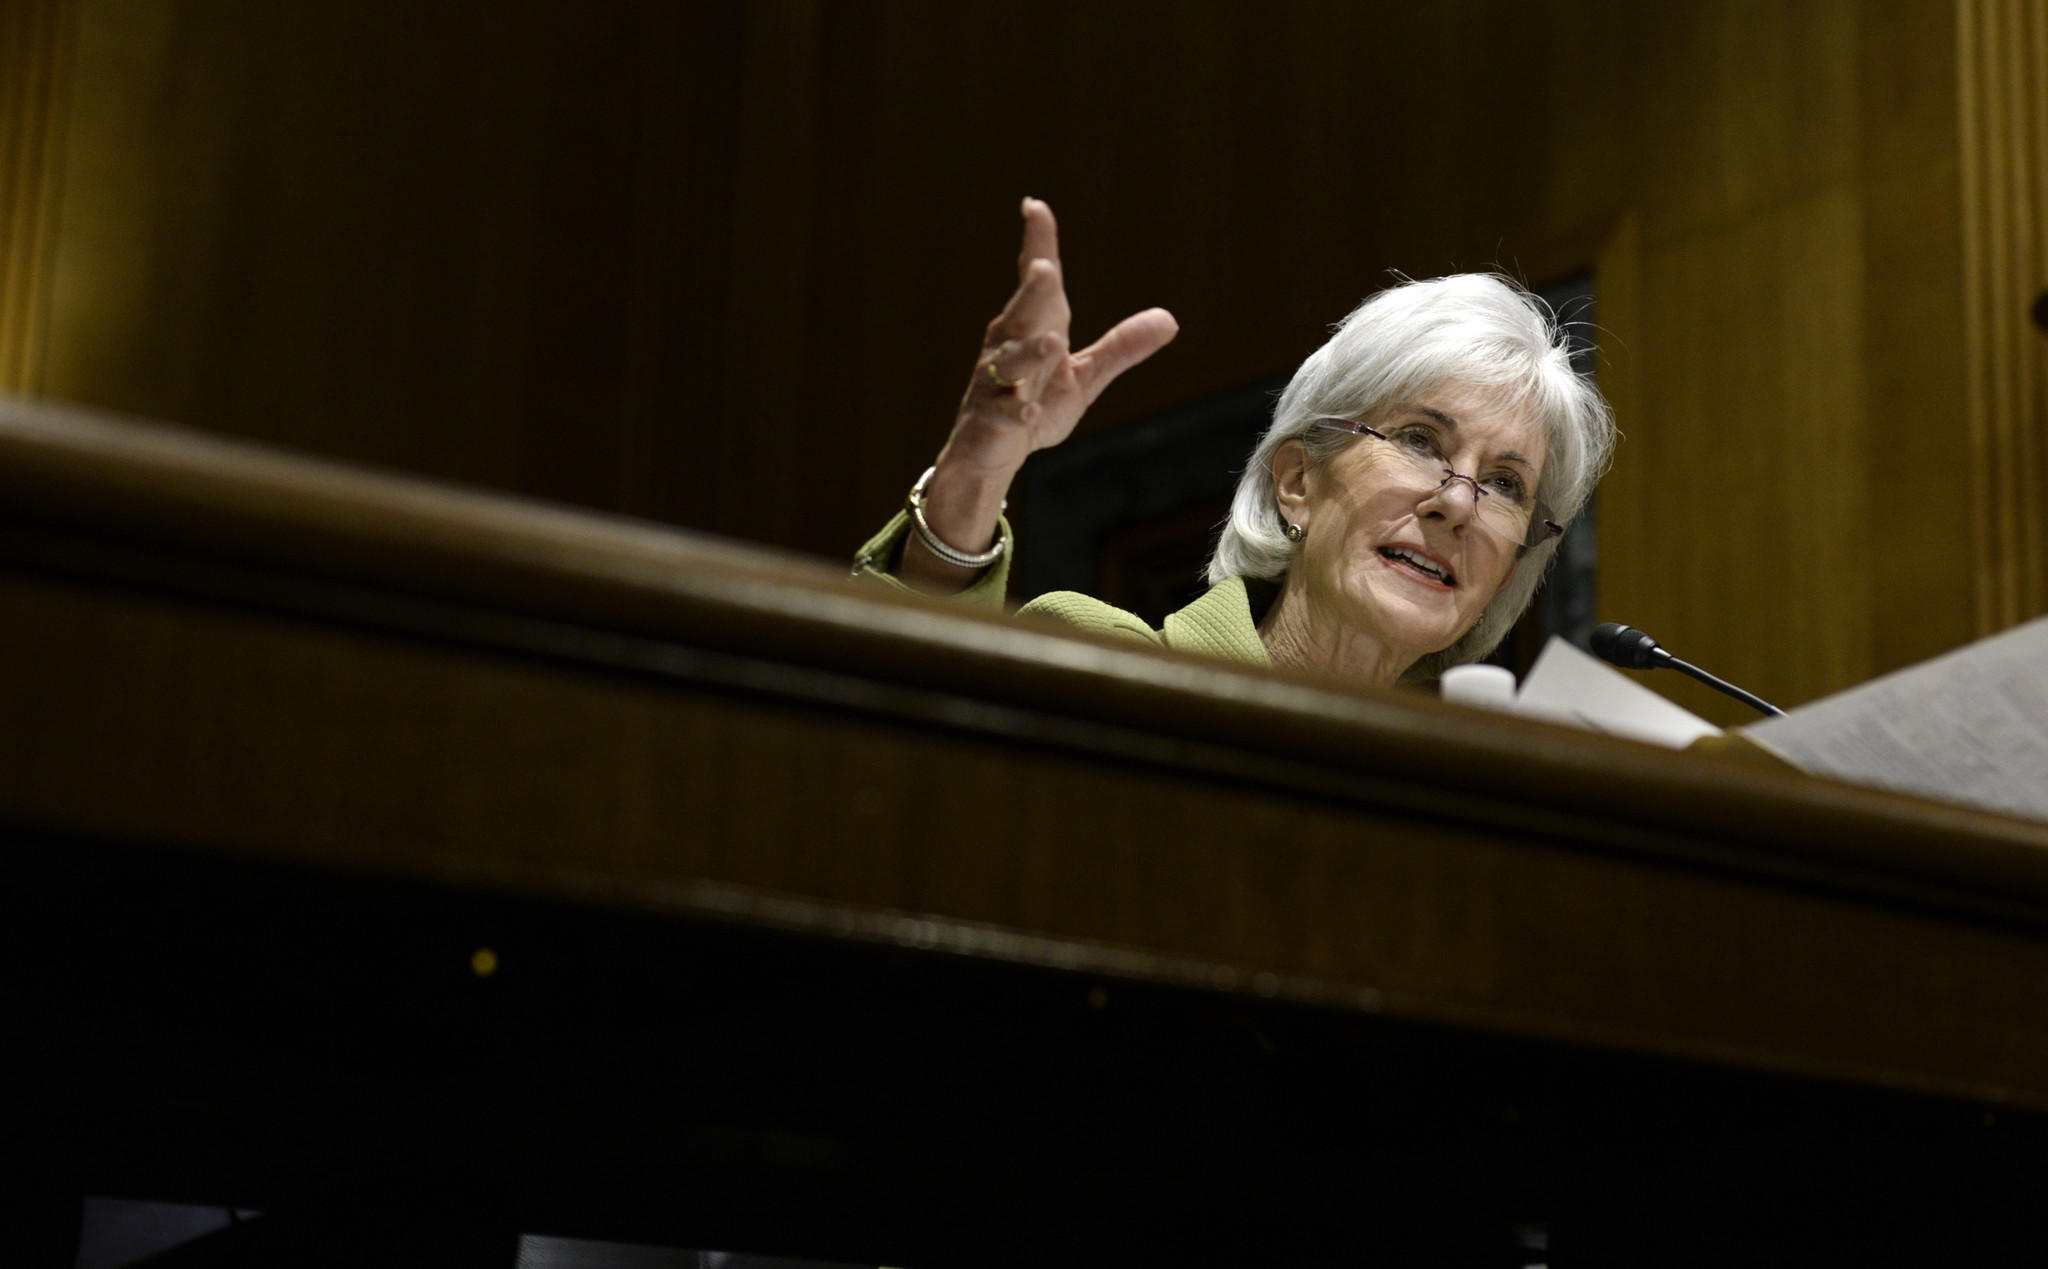 Health and Human Services Secretary Kathleen Sebelius told a Senate committee on April 10 that 7.5 million Americans have now signed up for health coverage under President Obama's healthcare law.